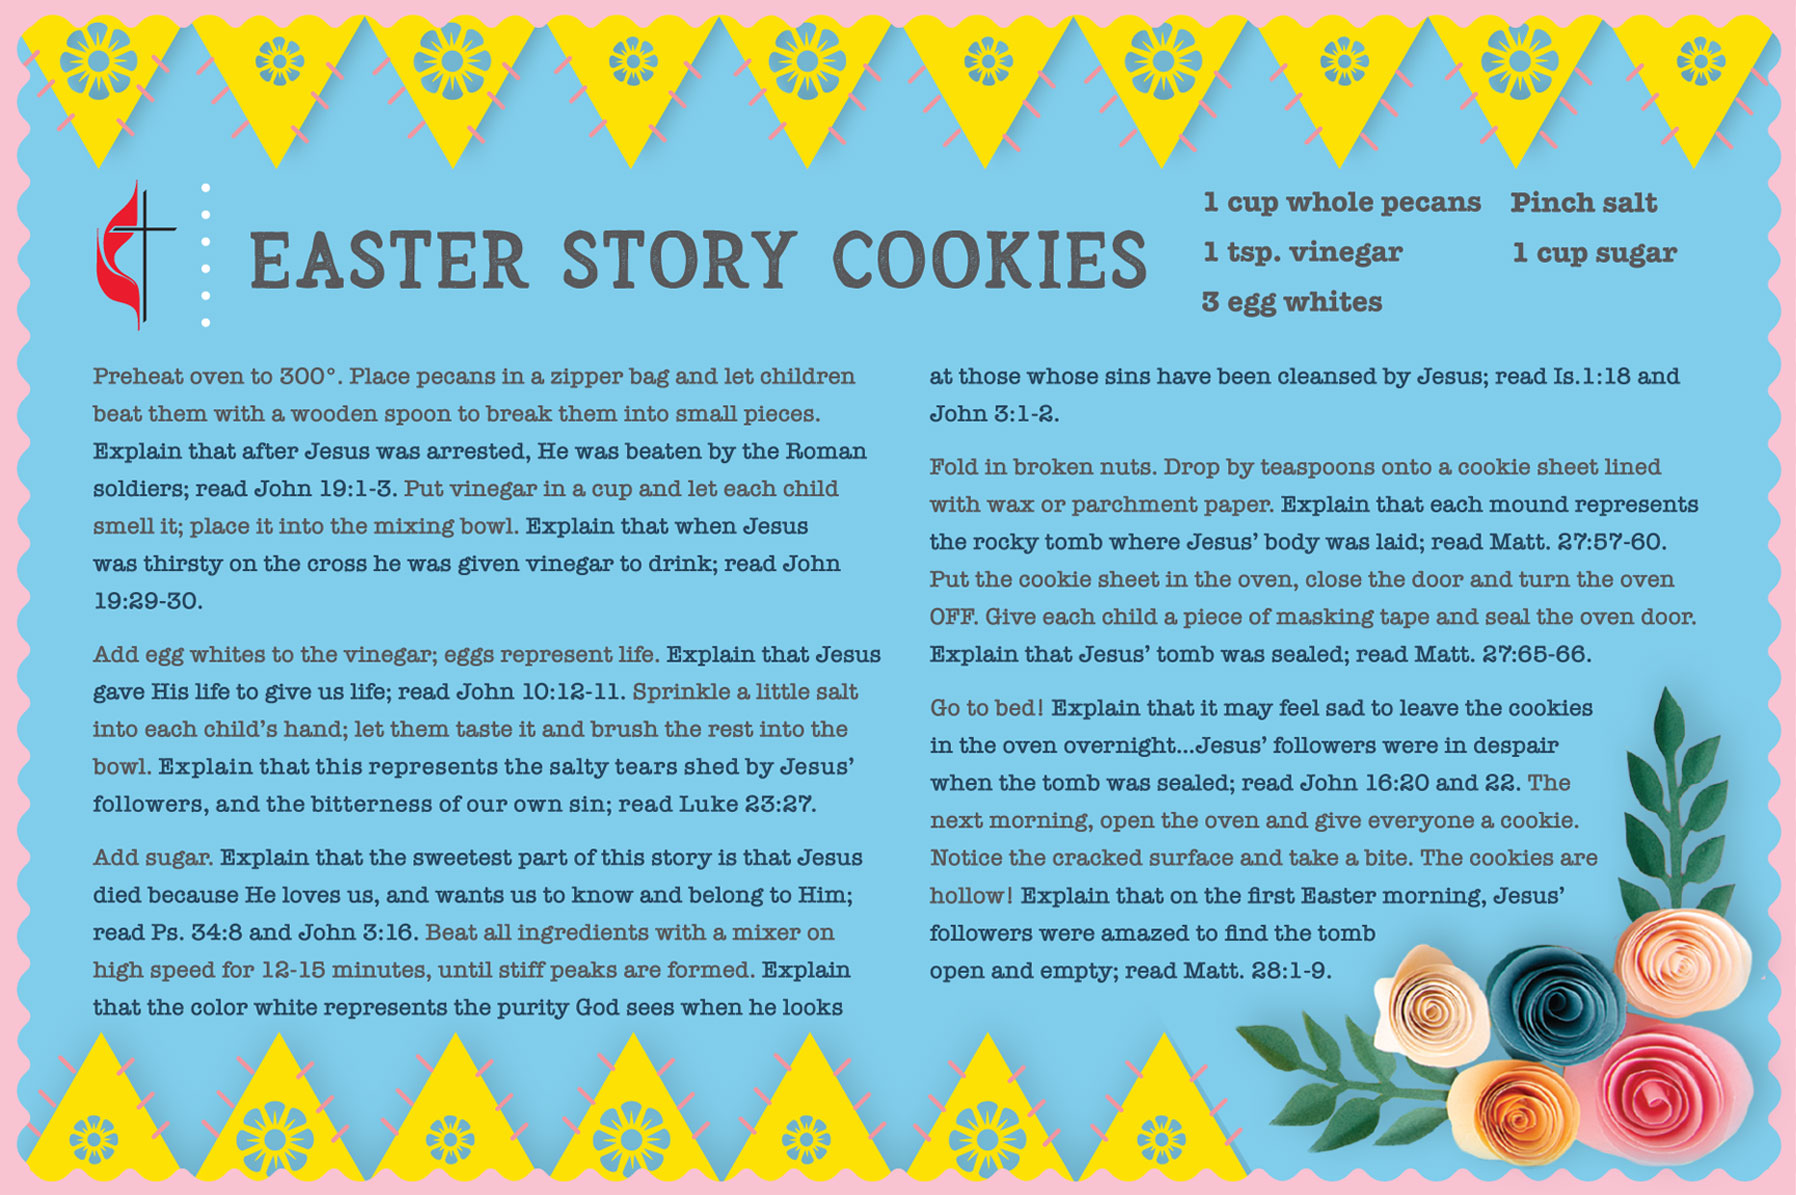 The Easter cookie recipe is a good children's activity to tell the story of the Resurrection. Illustration by Sara Schork for United Methodist Communications